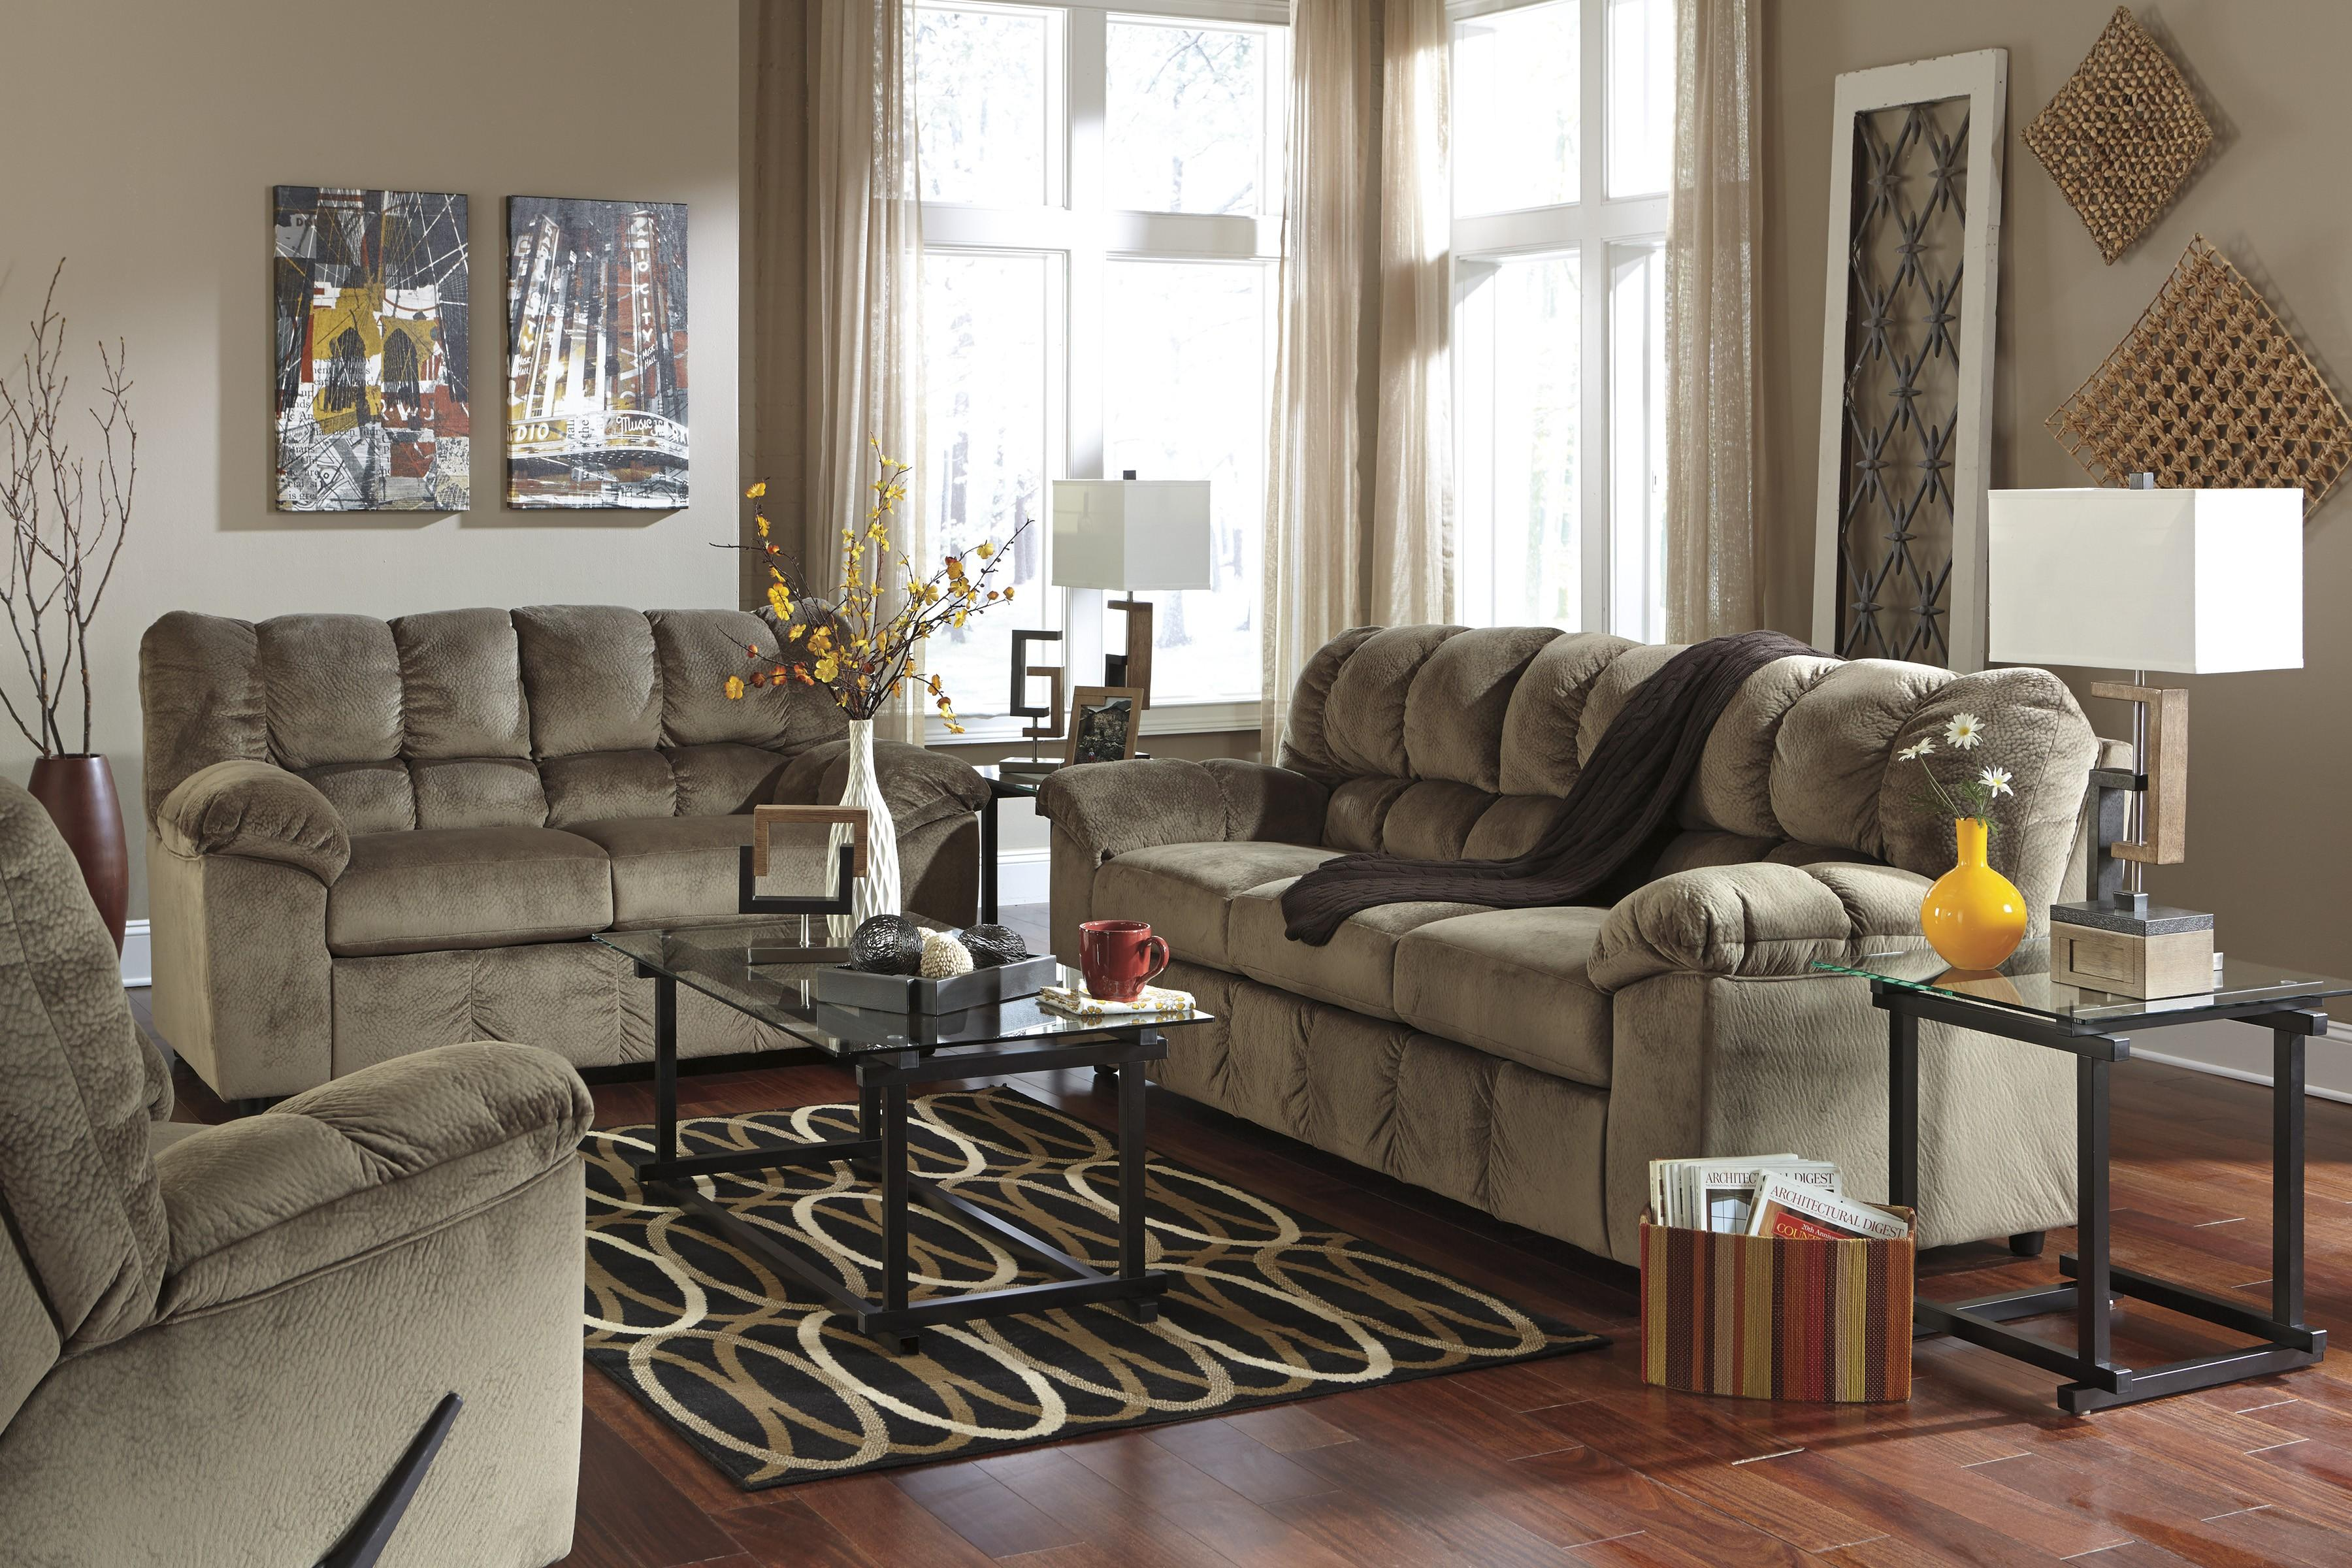 Signature Design by Ashley Julson - Dune Stationary Living Room Group - Item Number: 26601 Living Room Group 2